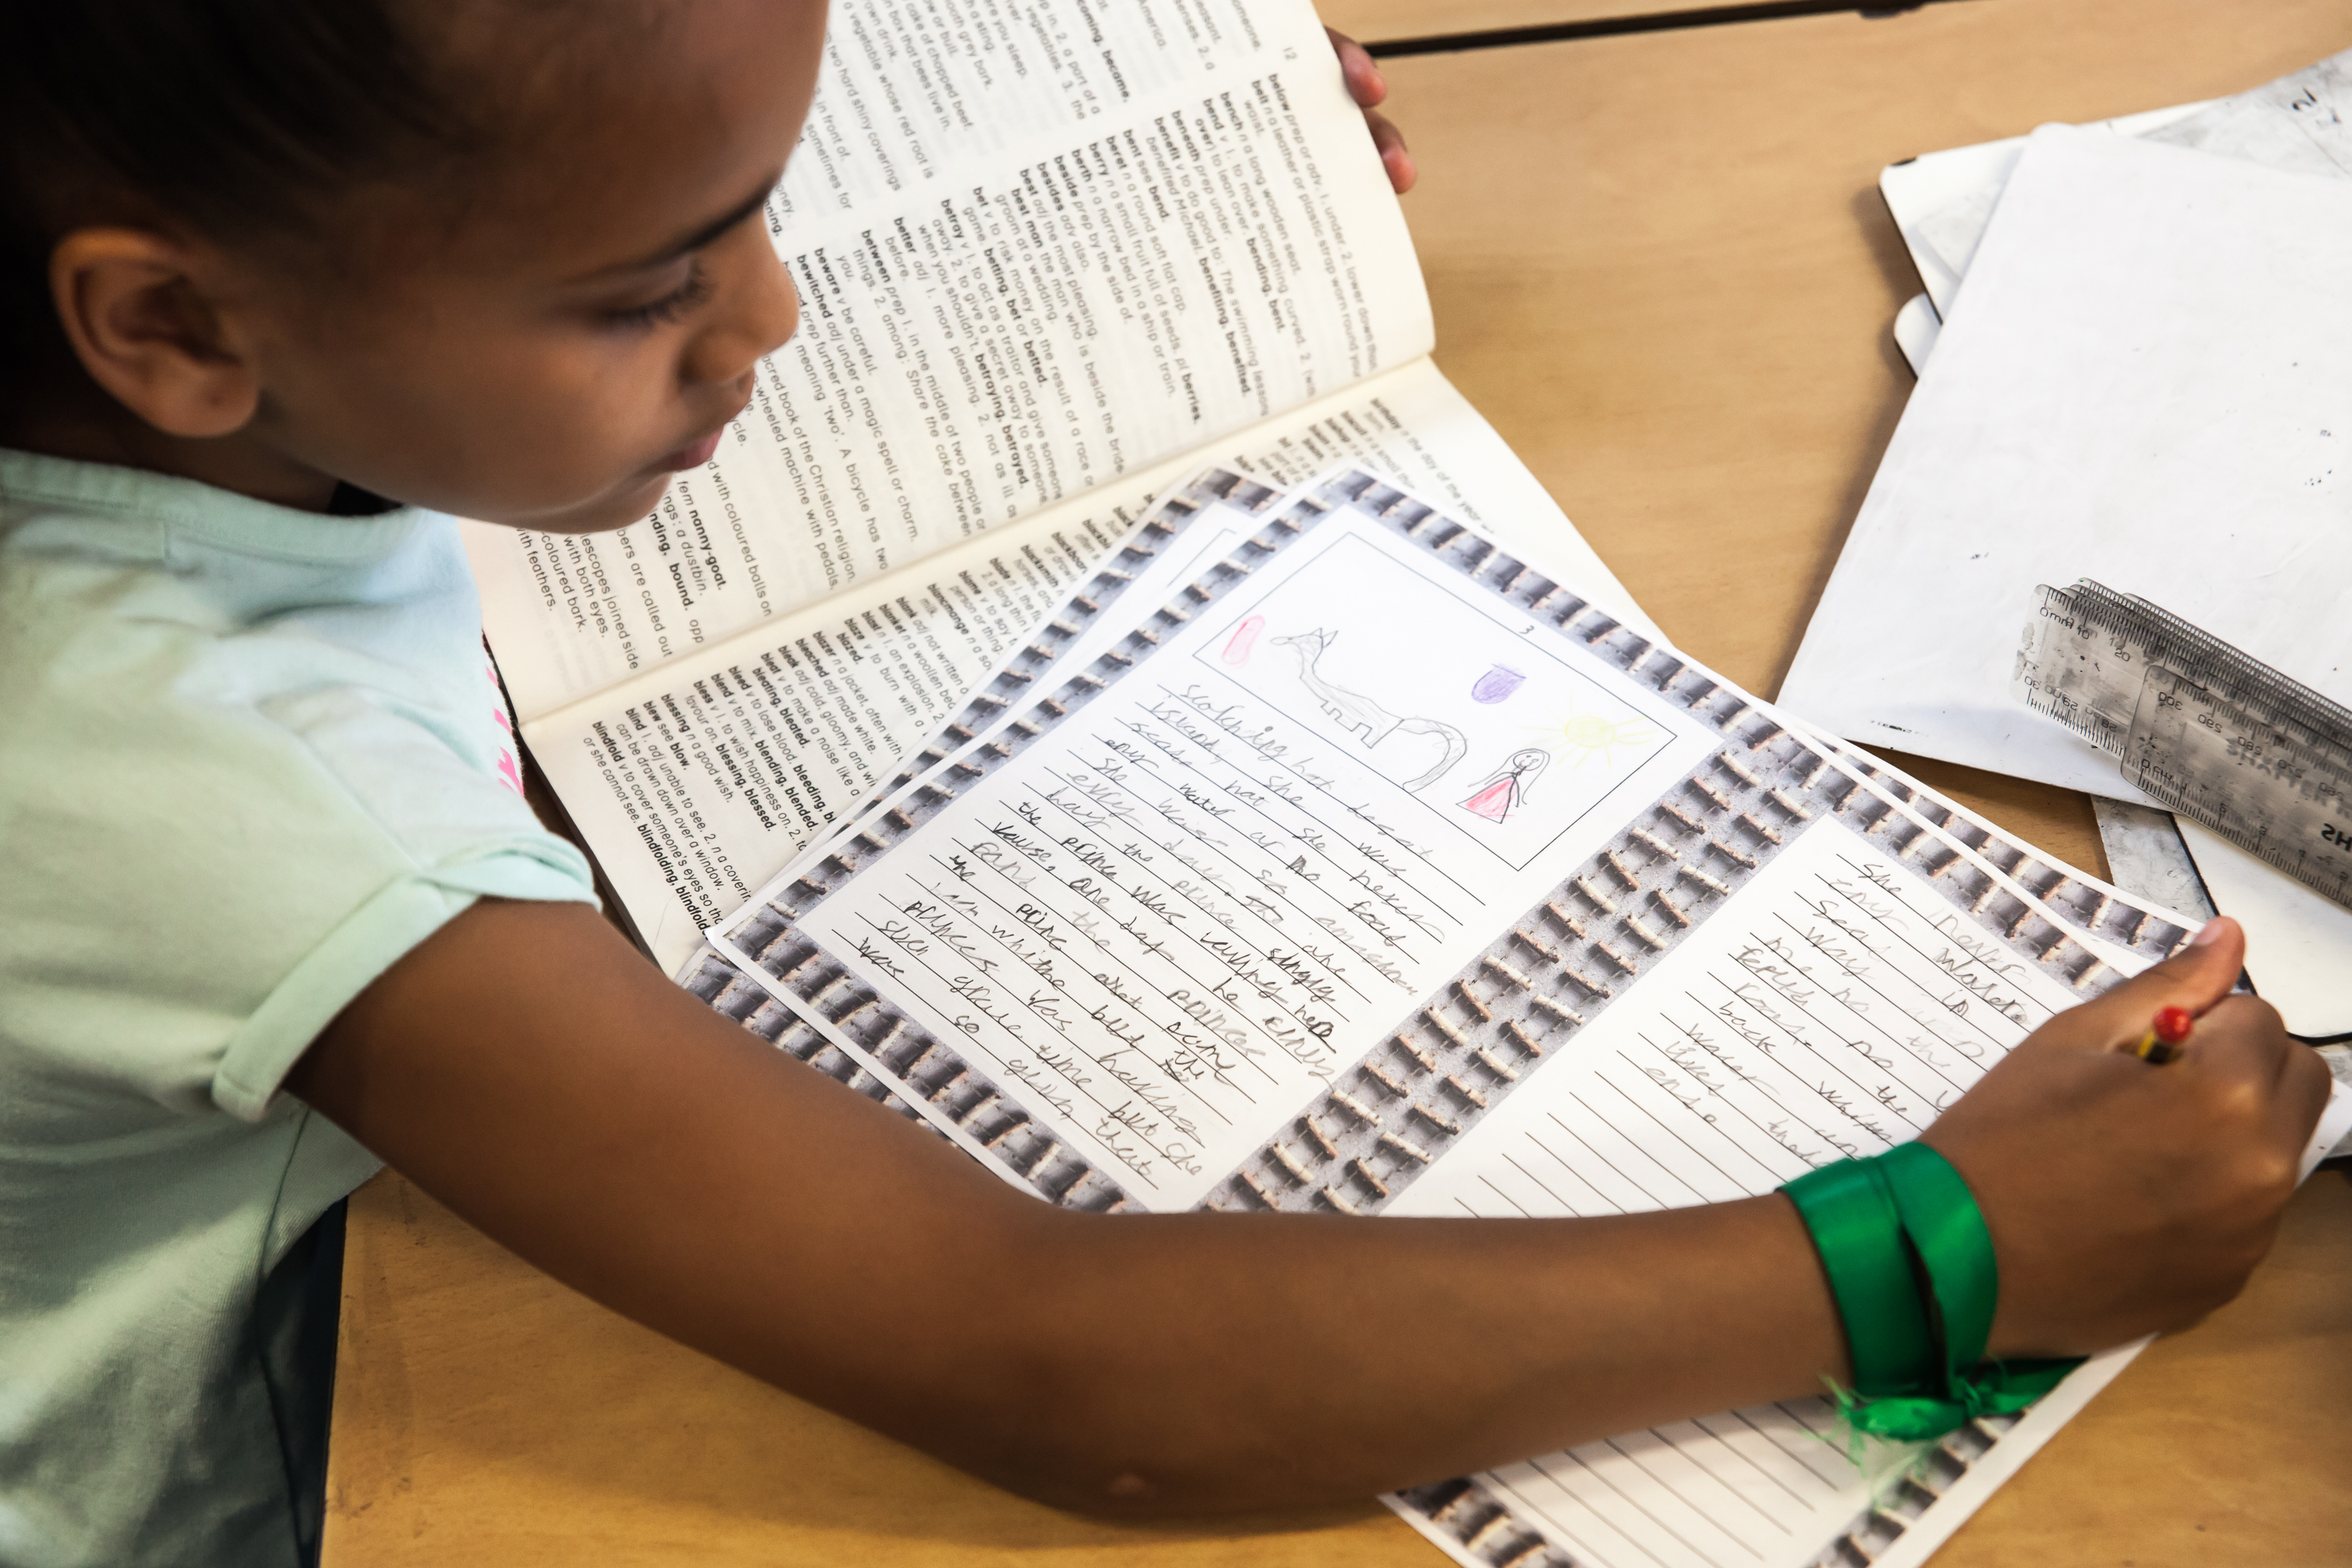 Child sitting at a table writing